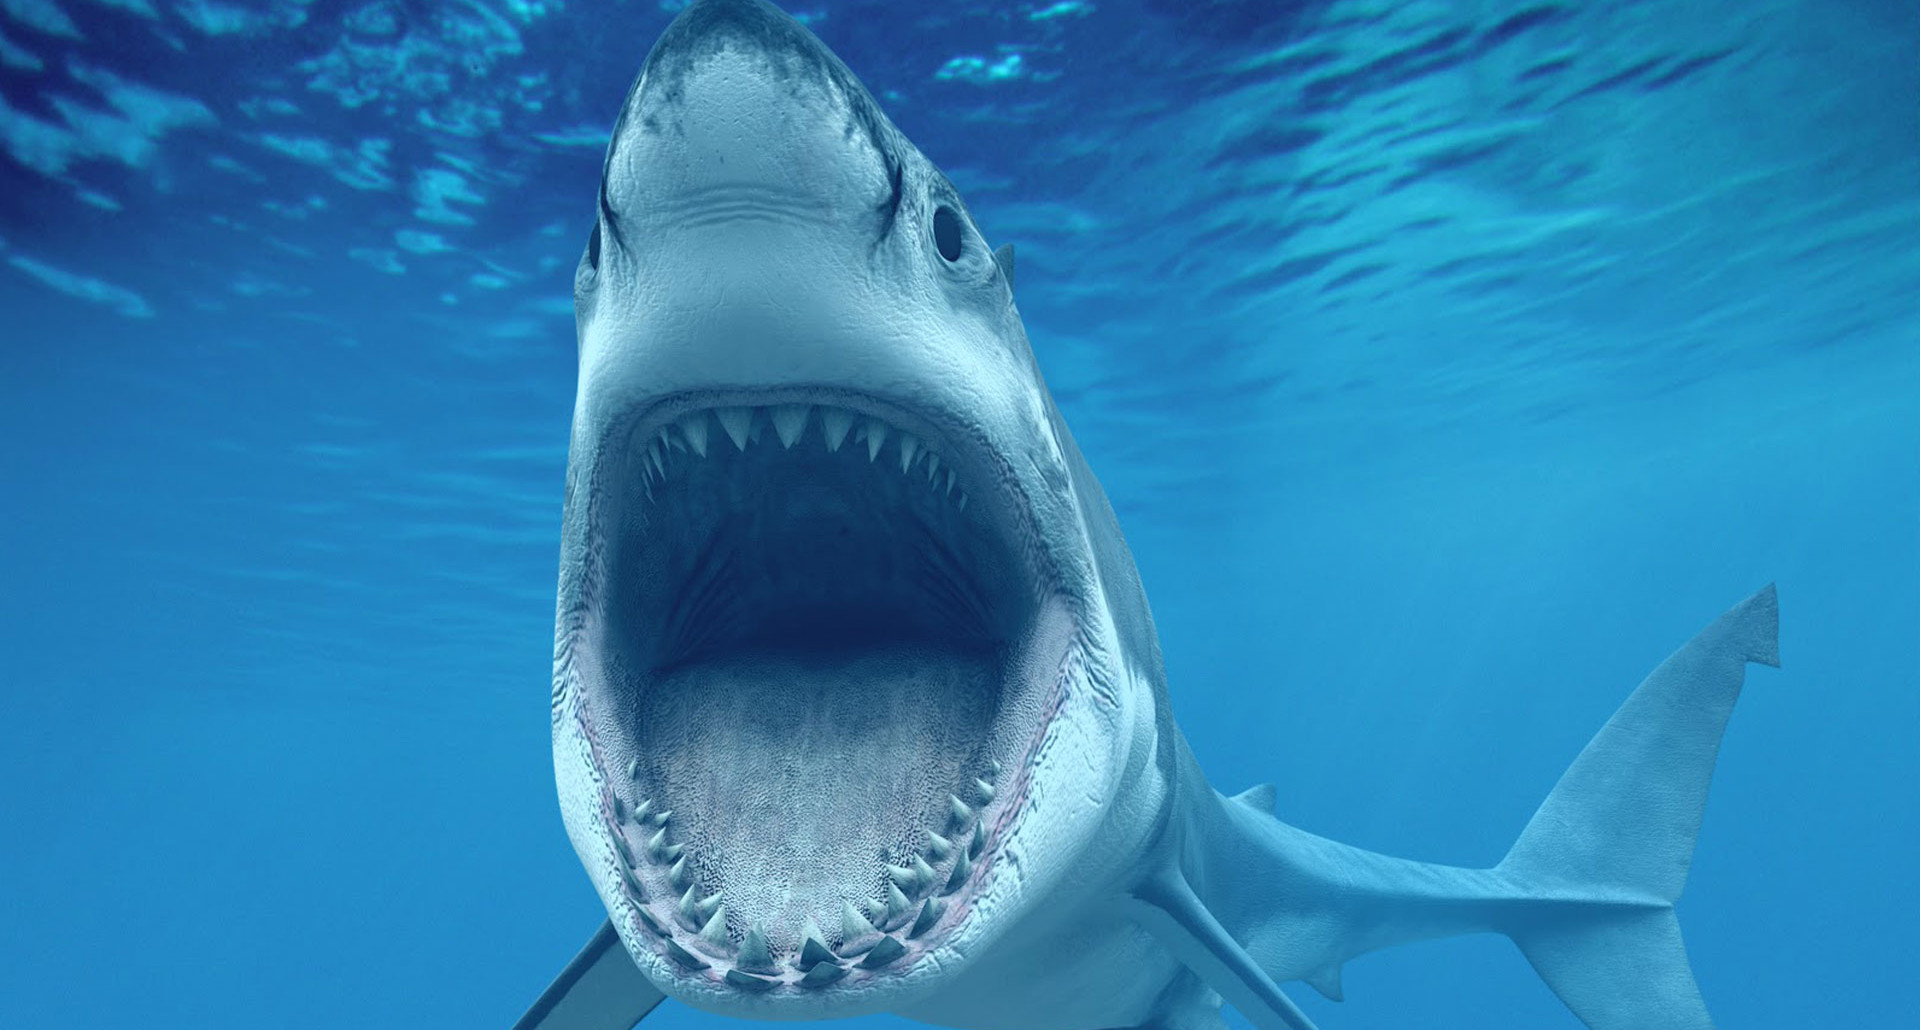 1920x1030 Great White Shark Picture Mouth Open Showing Teeth Hd Wallpaper